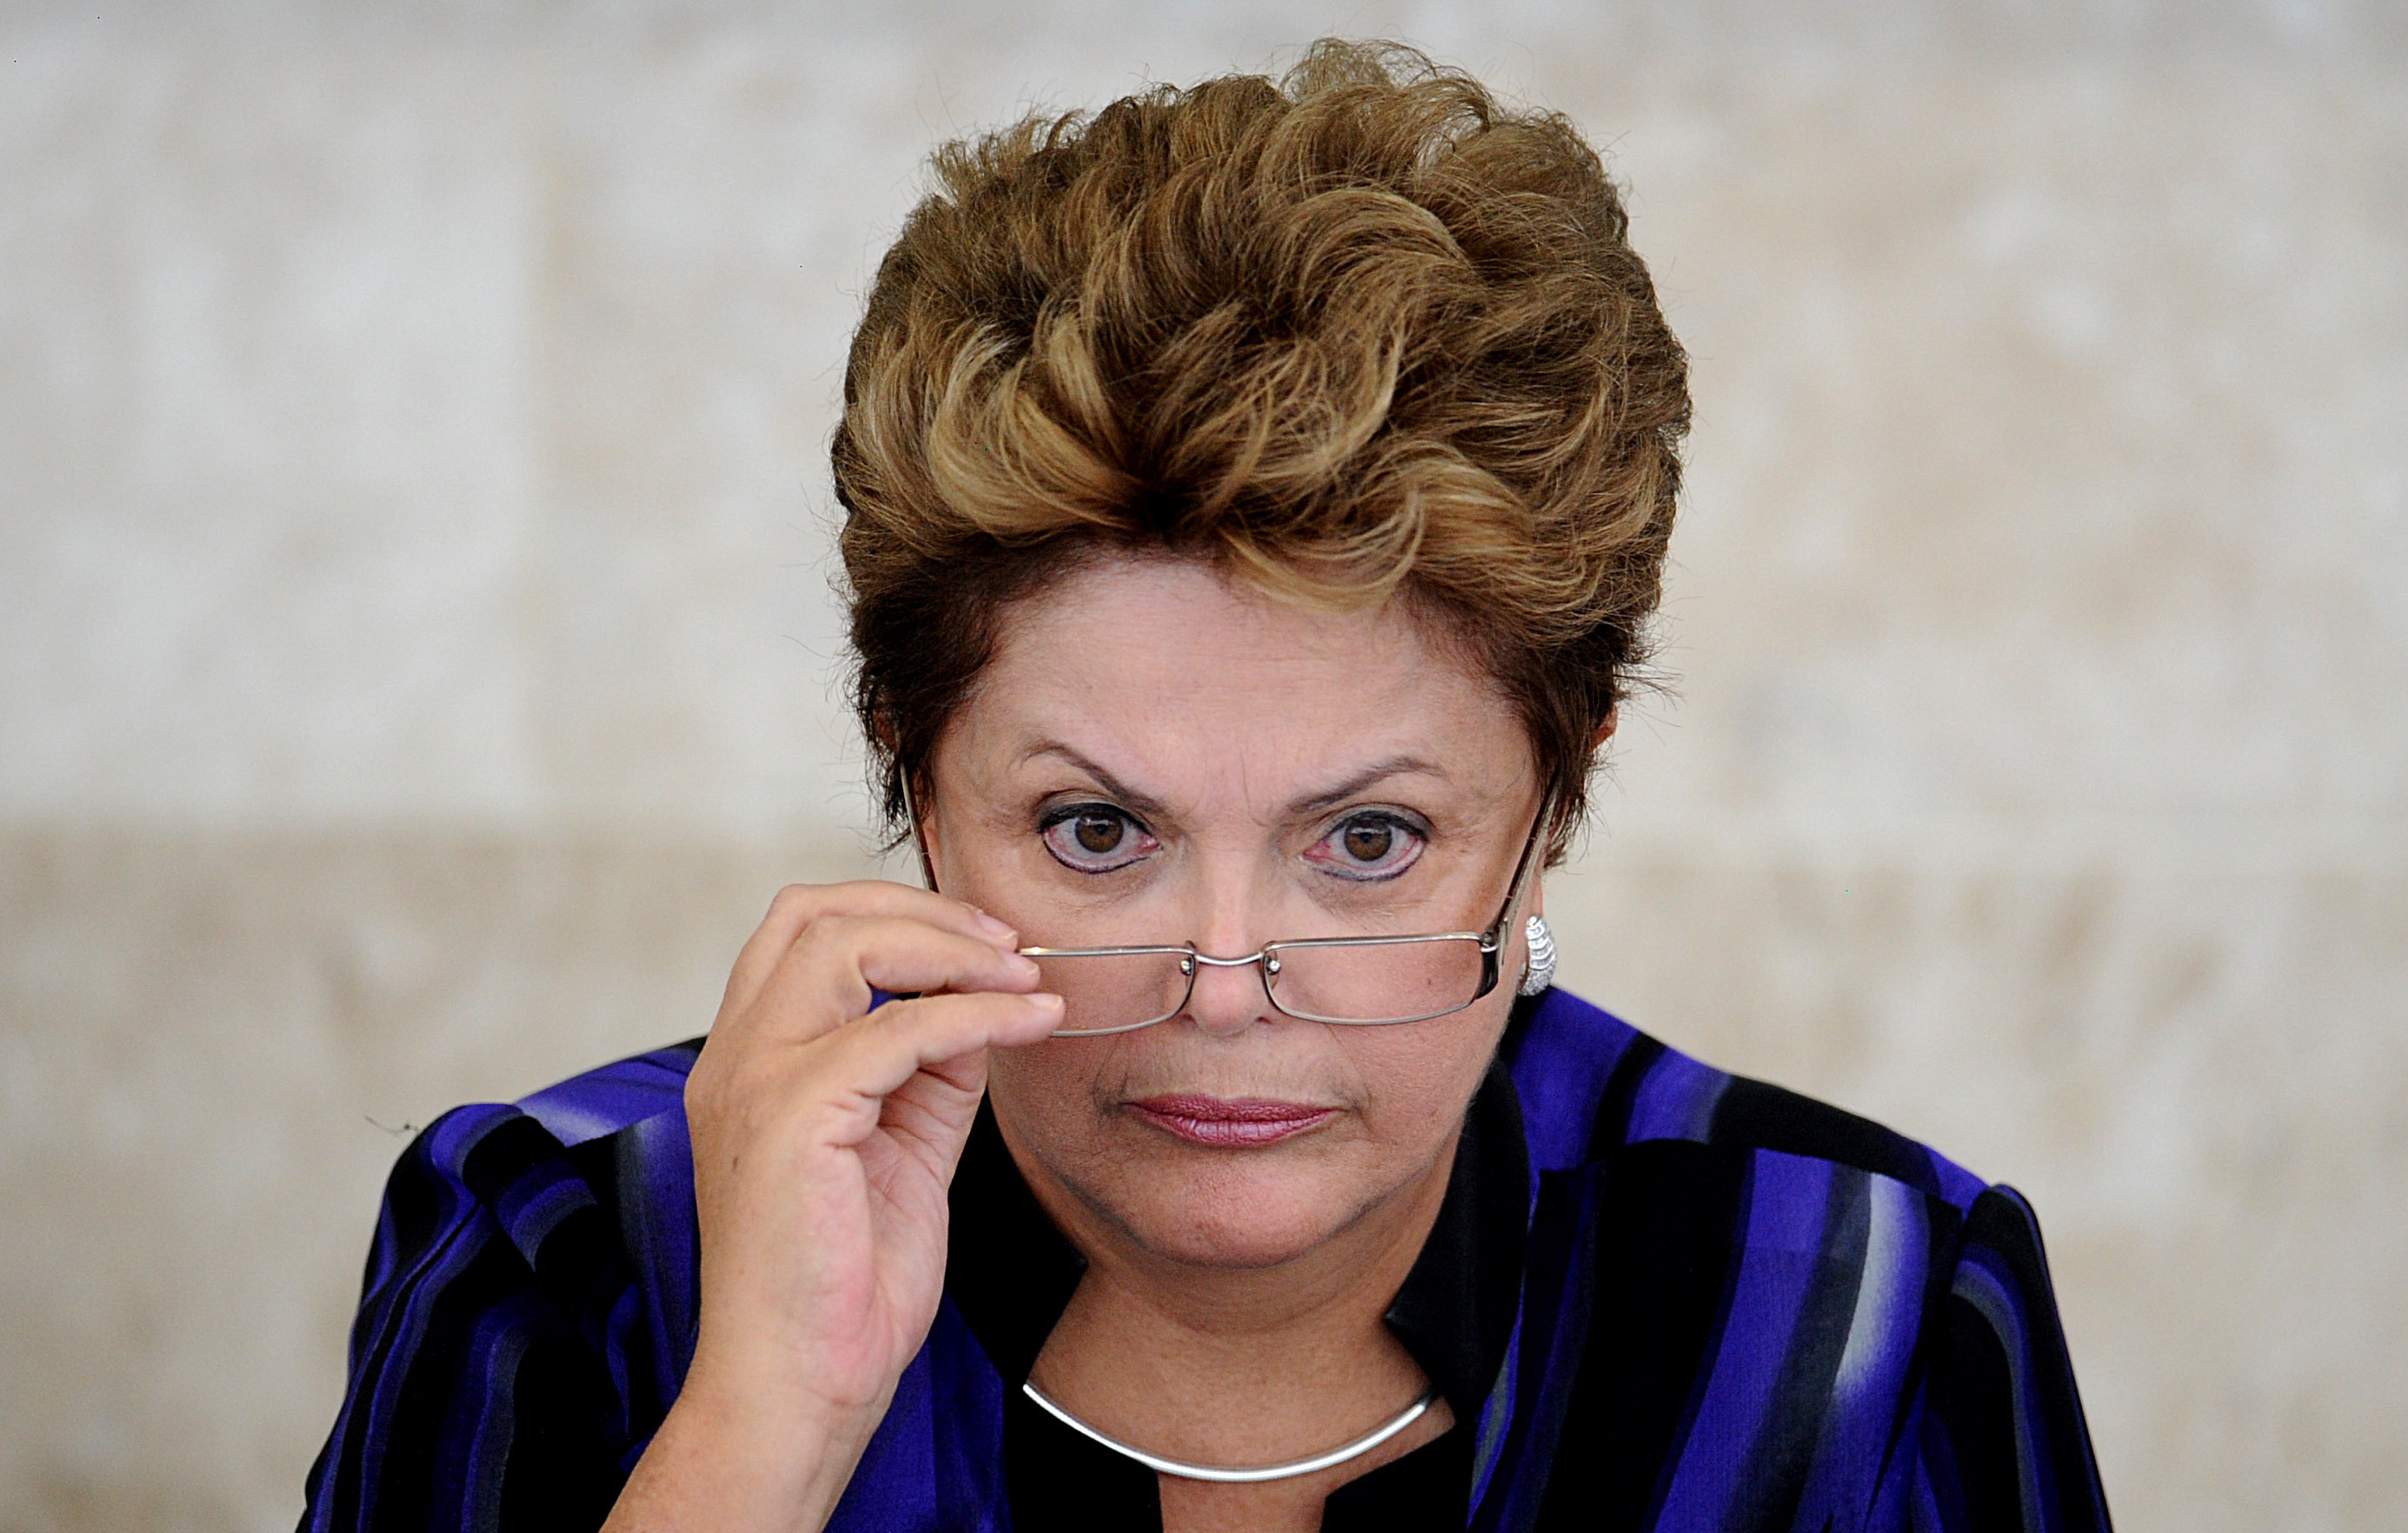 Brazil Admits It Has Spied On U.S. Diplomats